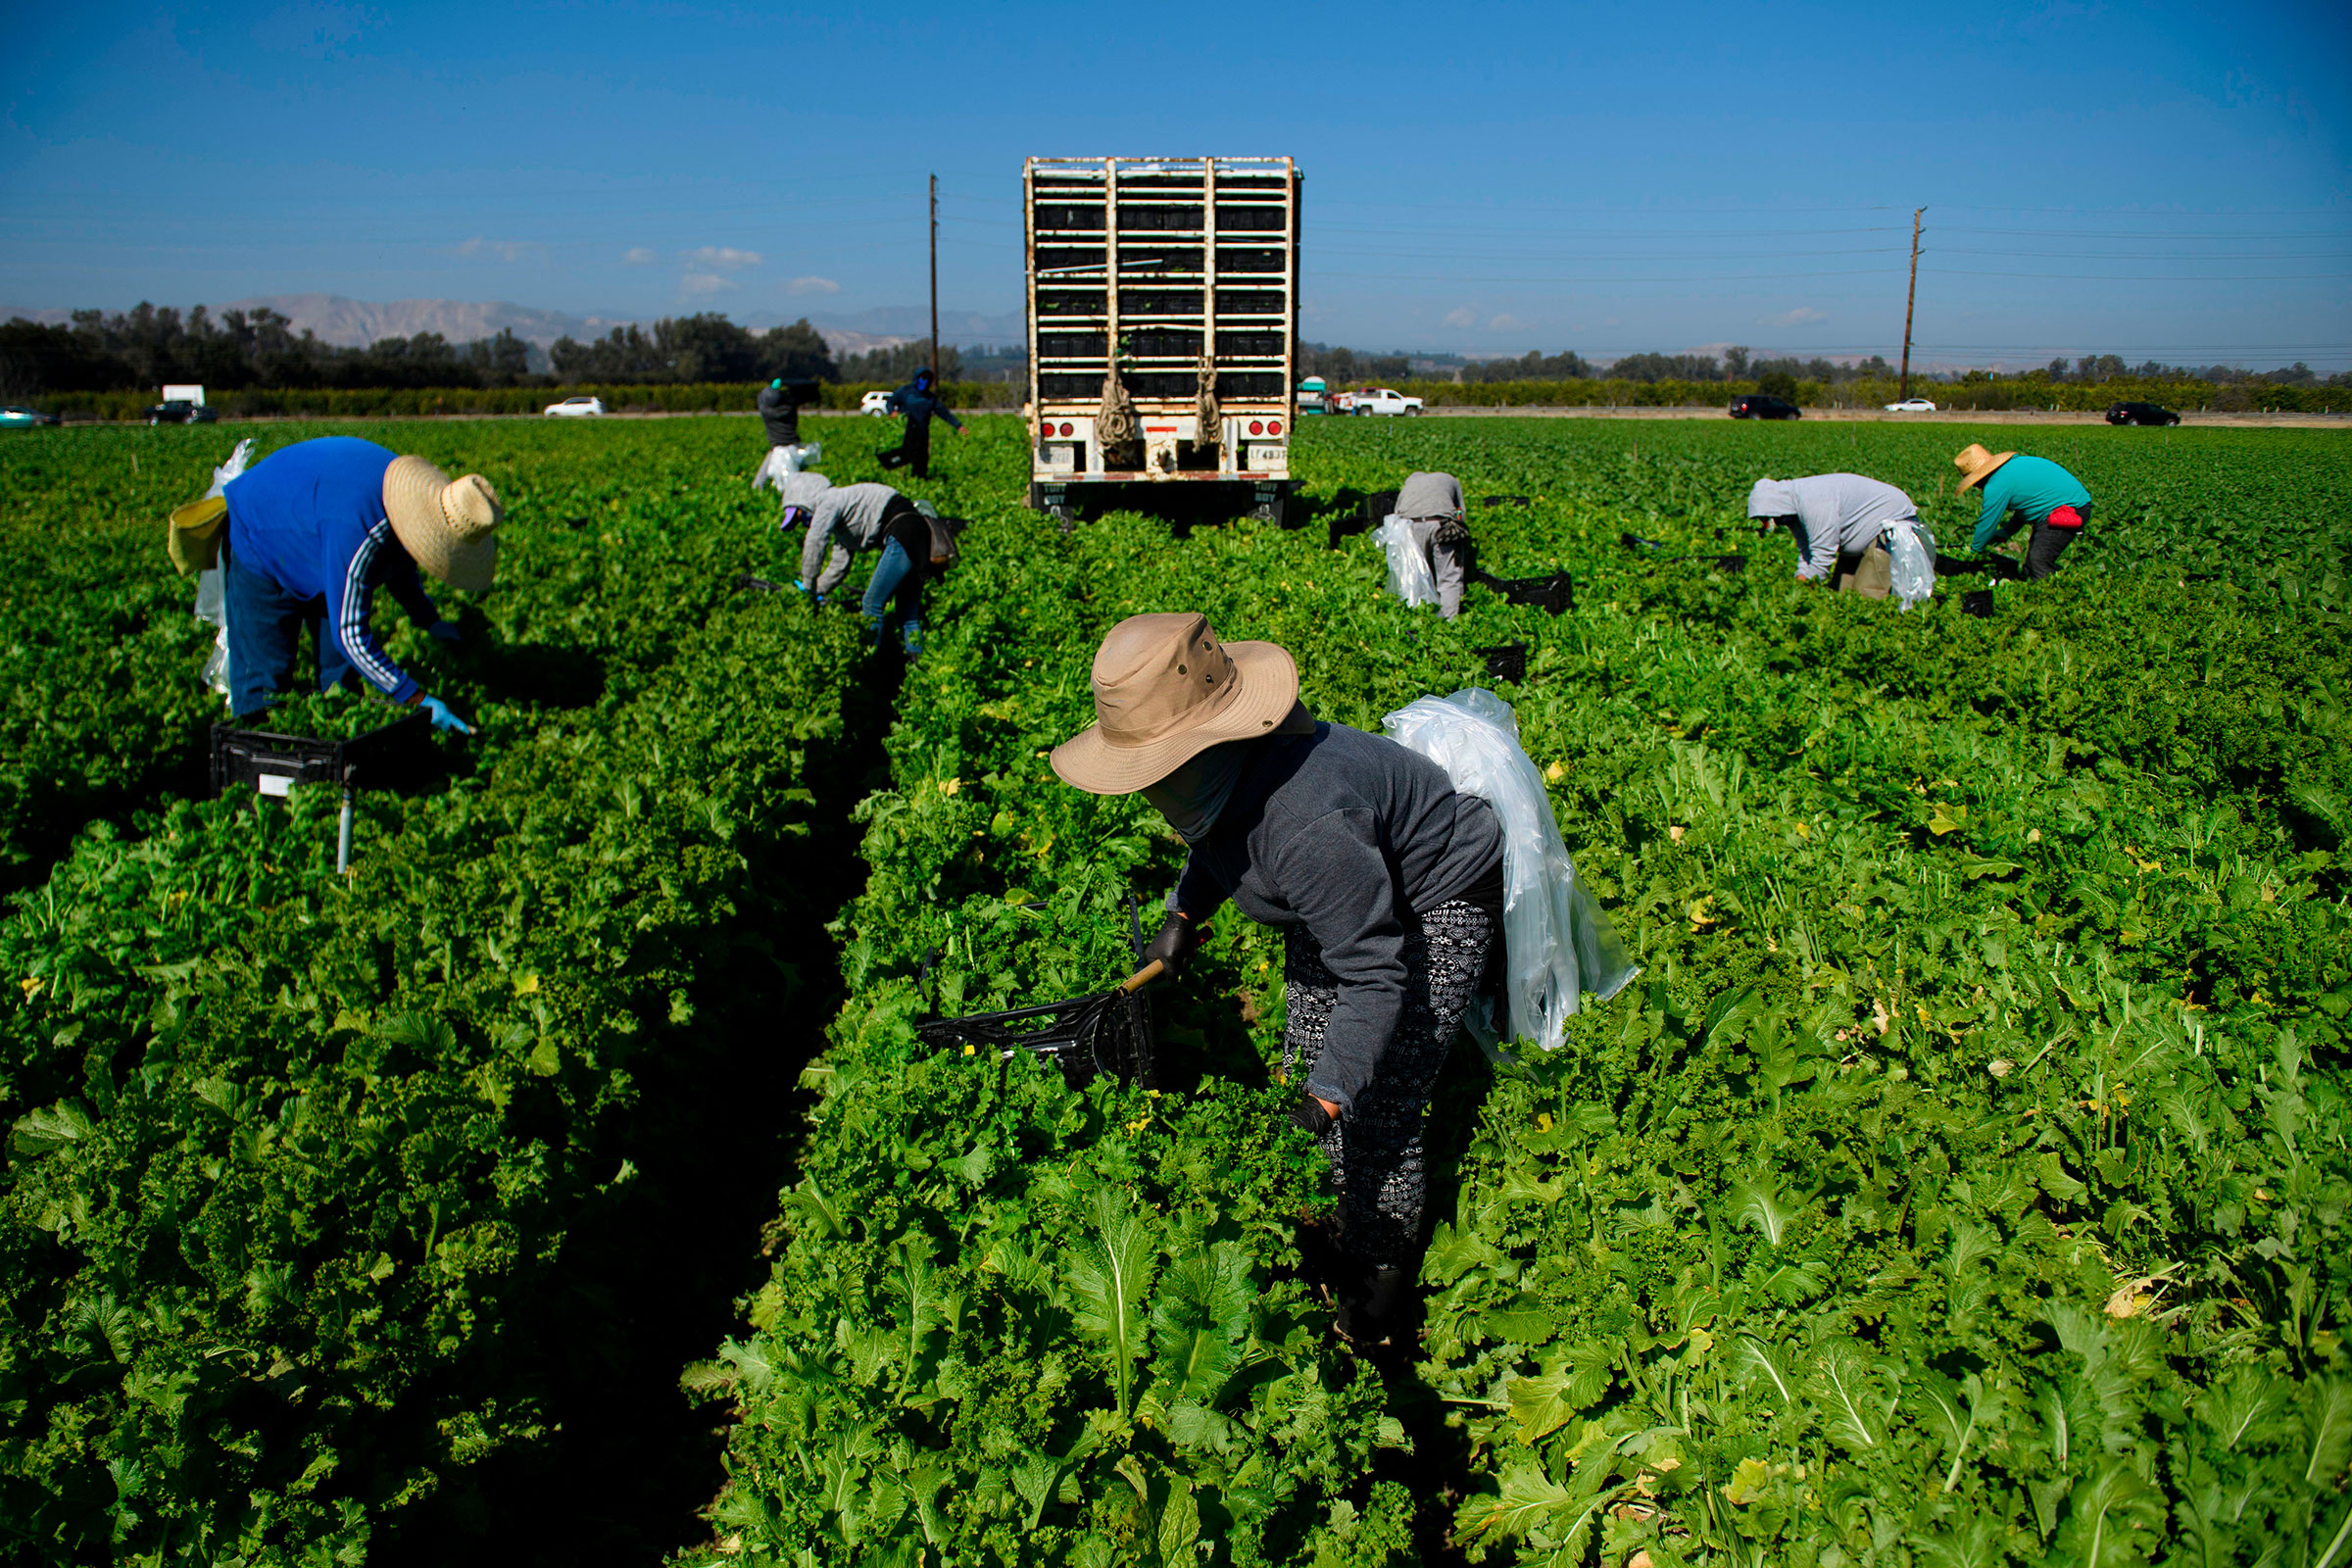 Farmworkers wear face masks while harvesting curly mustard in a field in Ventura County, Calif. on Feb. 10, 2021.